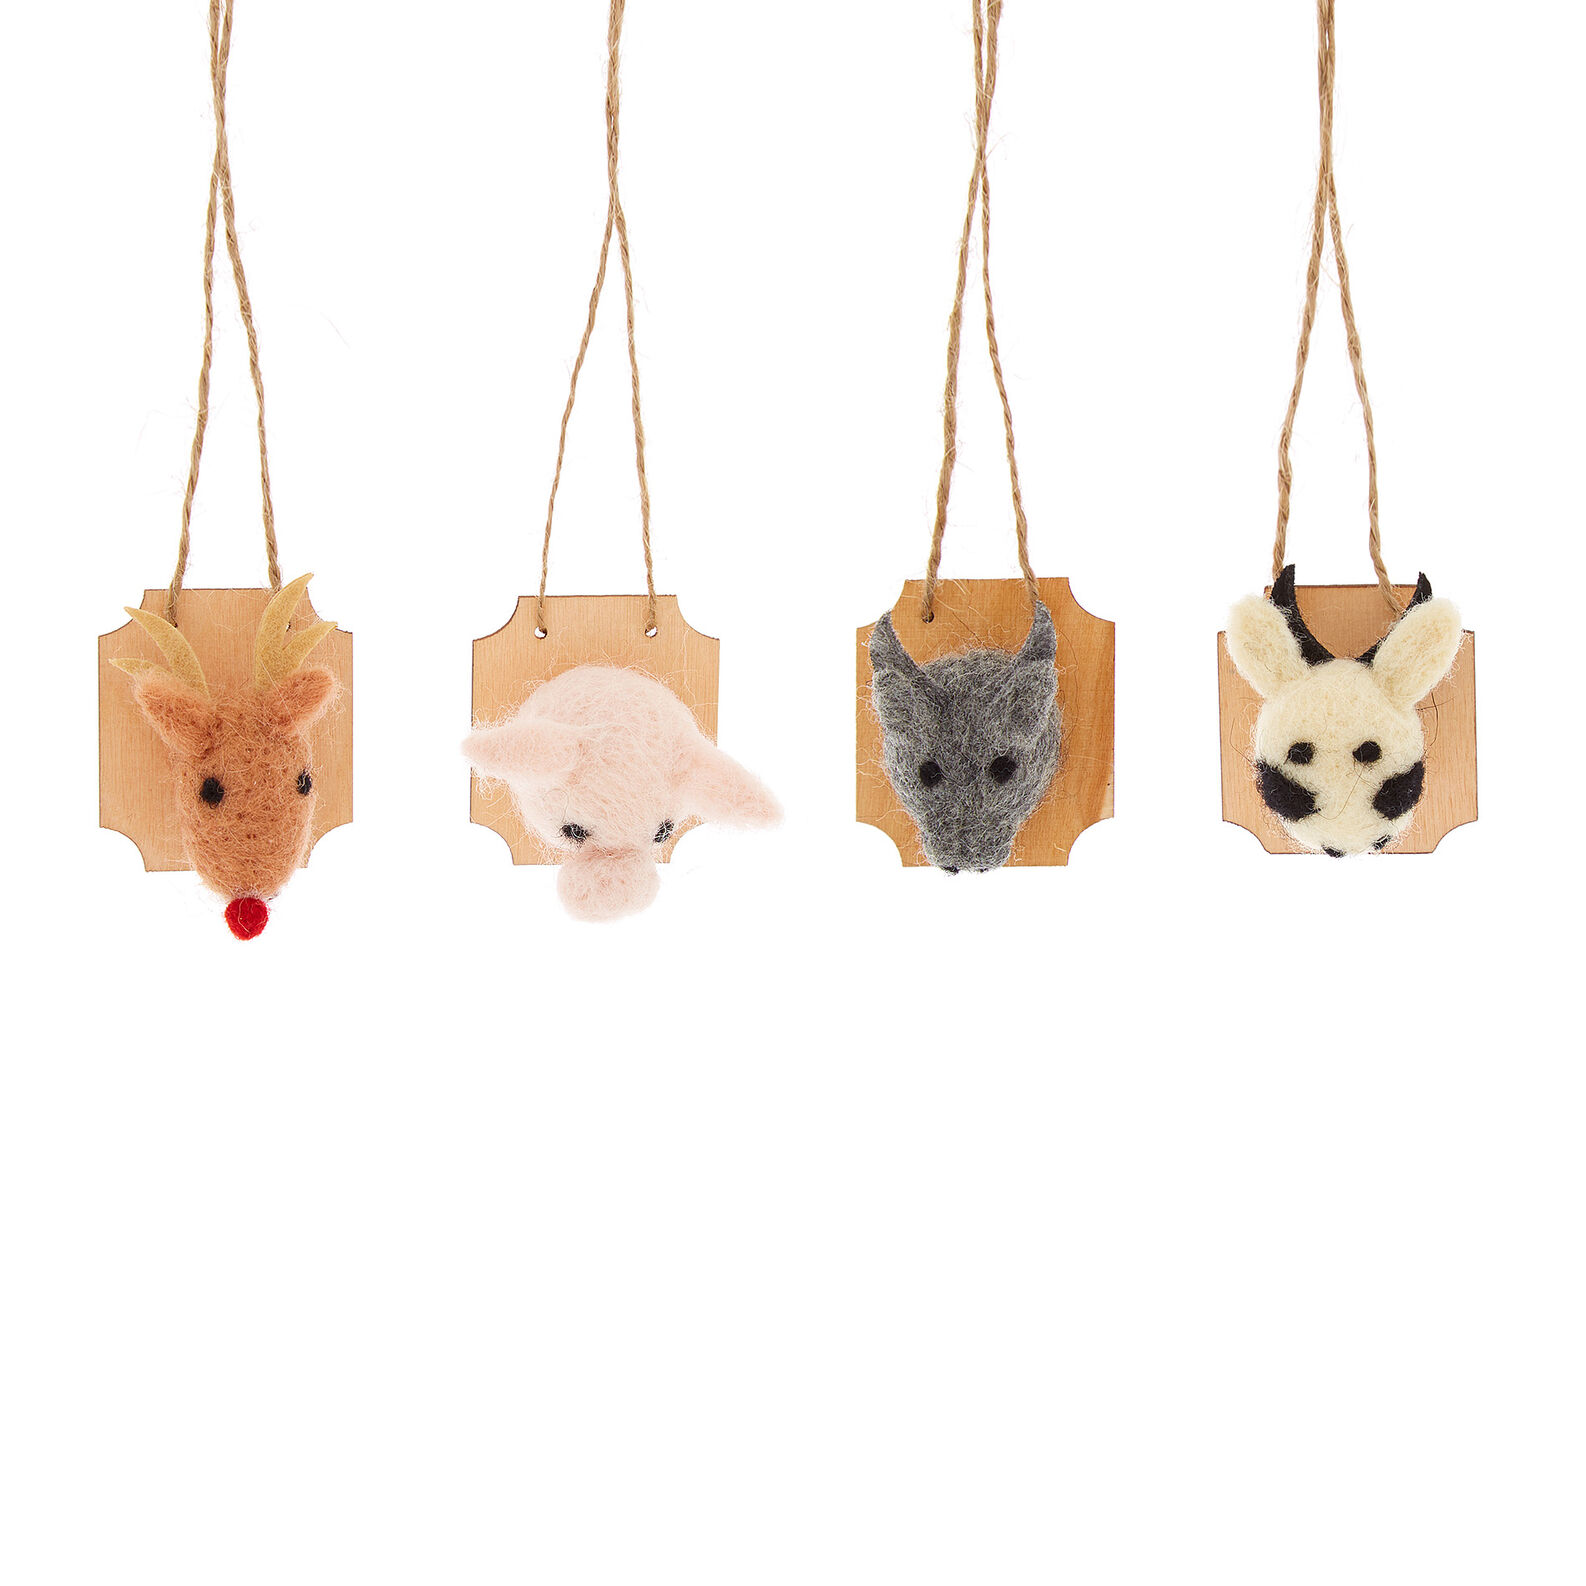 Set of 4 handmade animal decorations